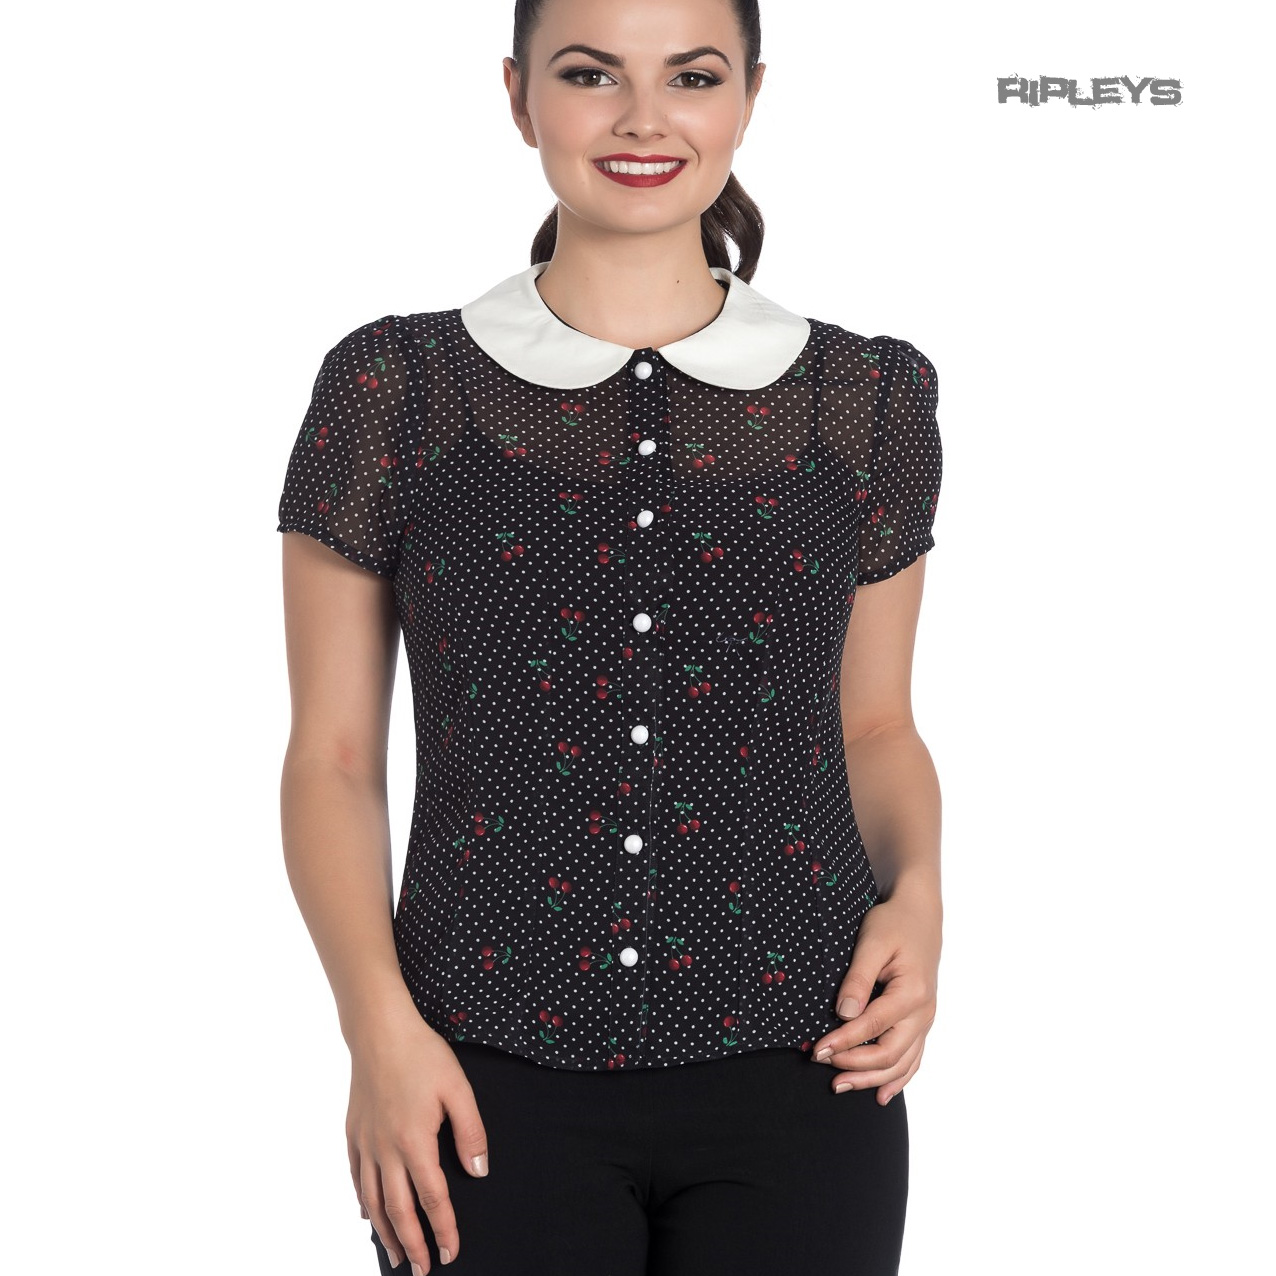 Hell-Bunny-Shirt-Top-Black-50s-Polka-Dot-SOPHIE-Blouse-Cherries-Cherry-All-Sizes thumbnail 10